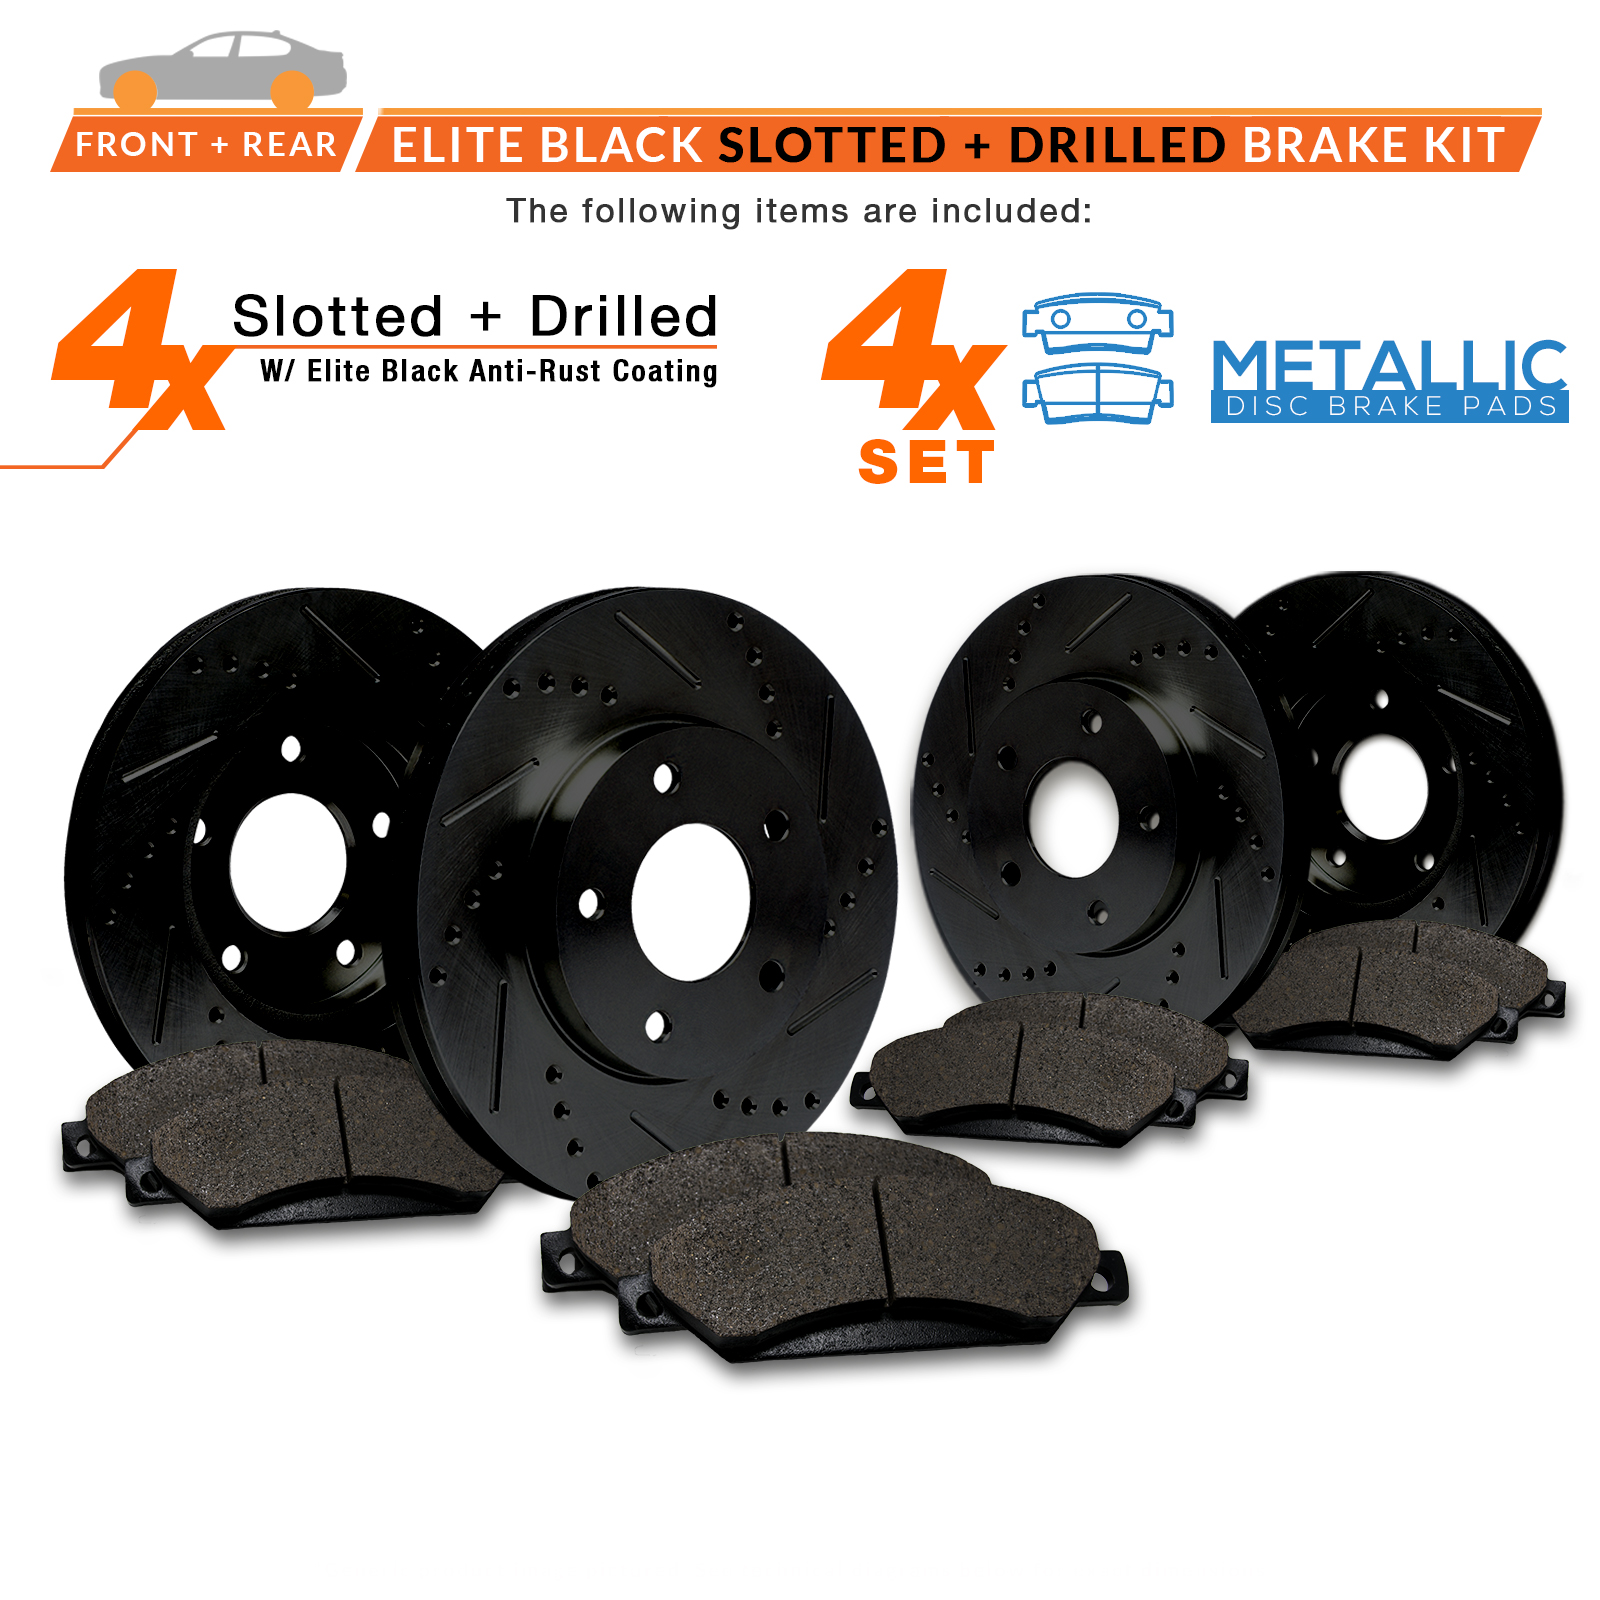 Front-Rear-Rotors-w-Metallic-Pad-Elite-Brake-Kit thumbnail 2